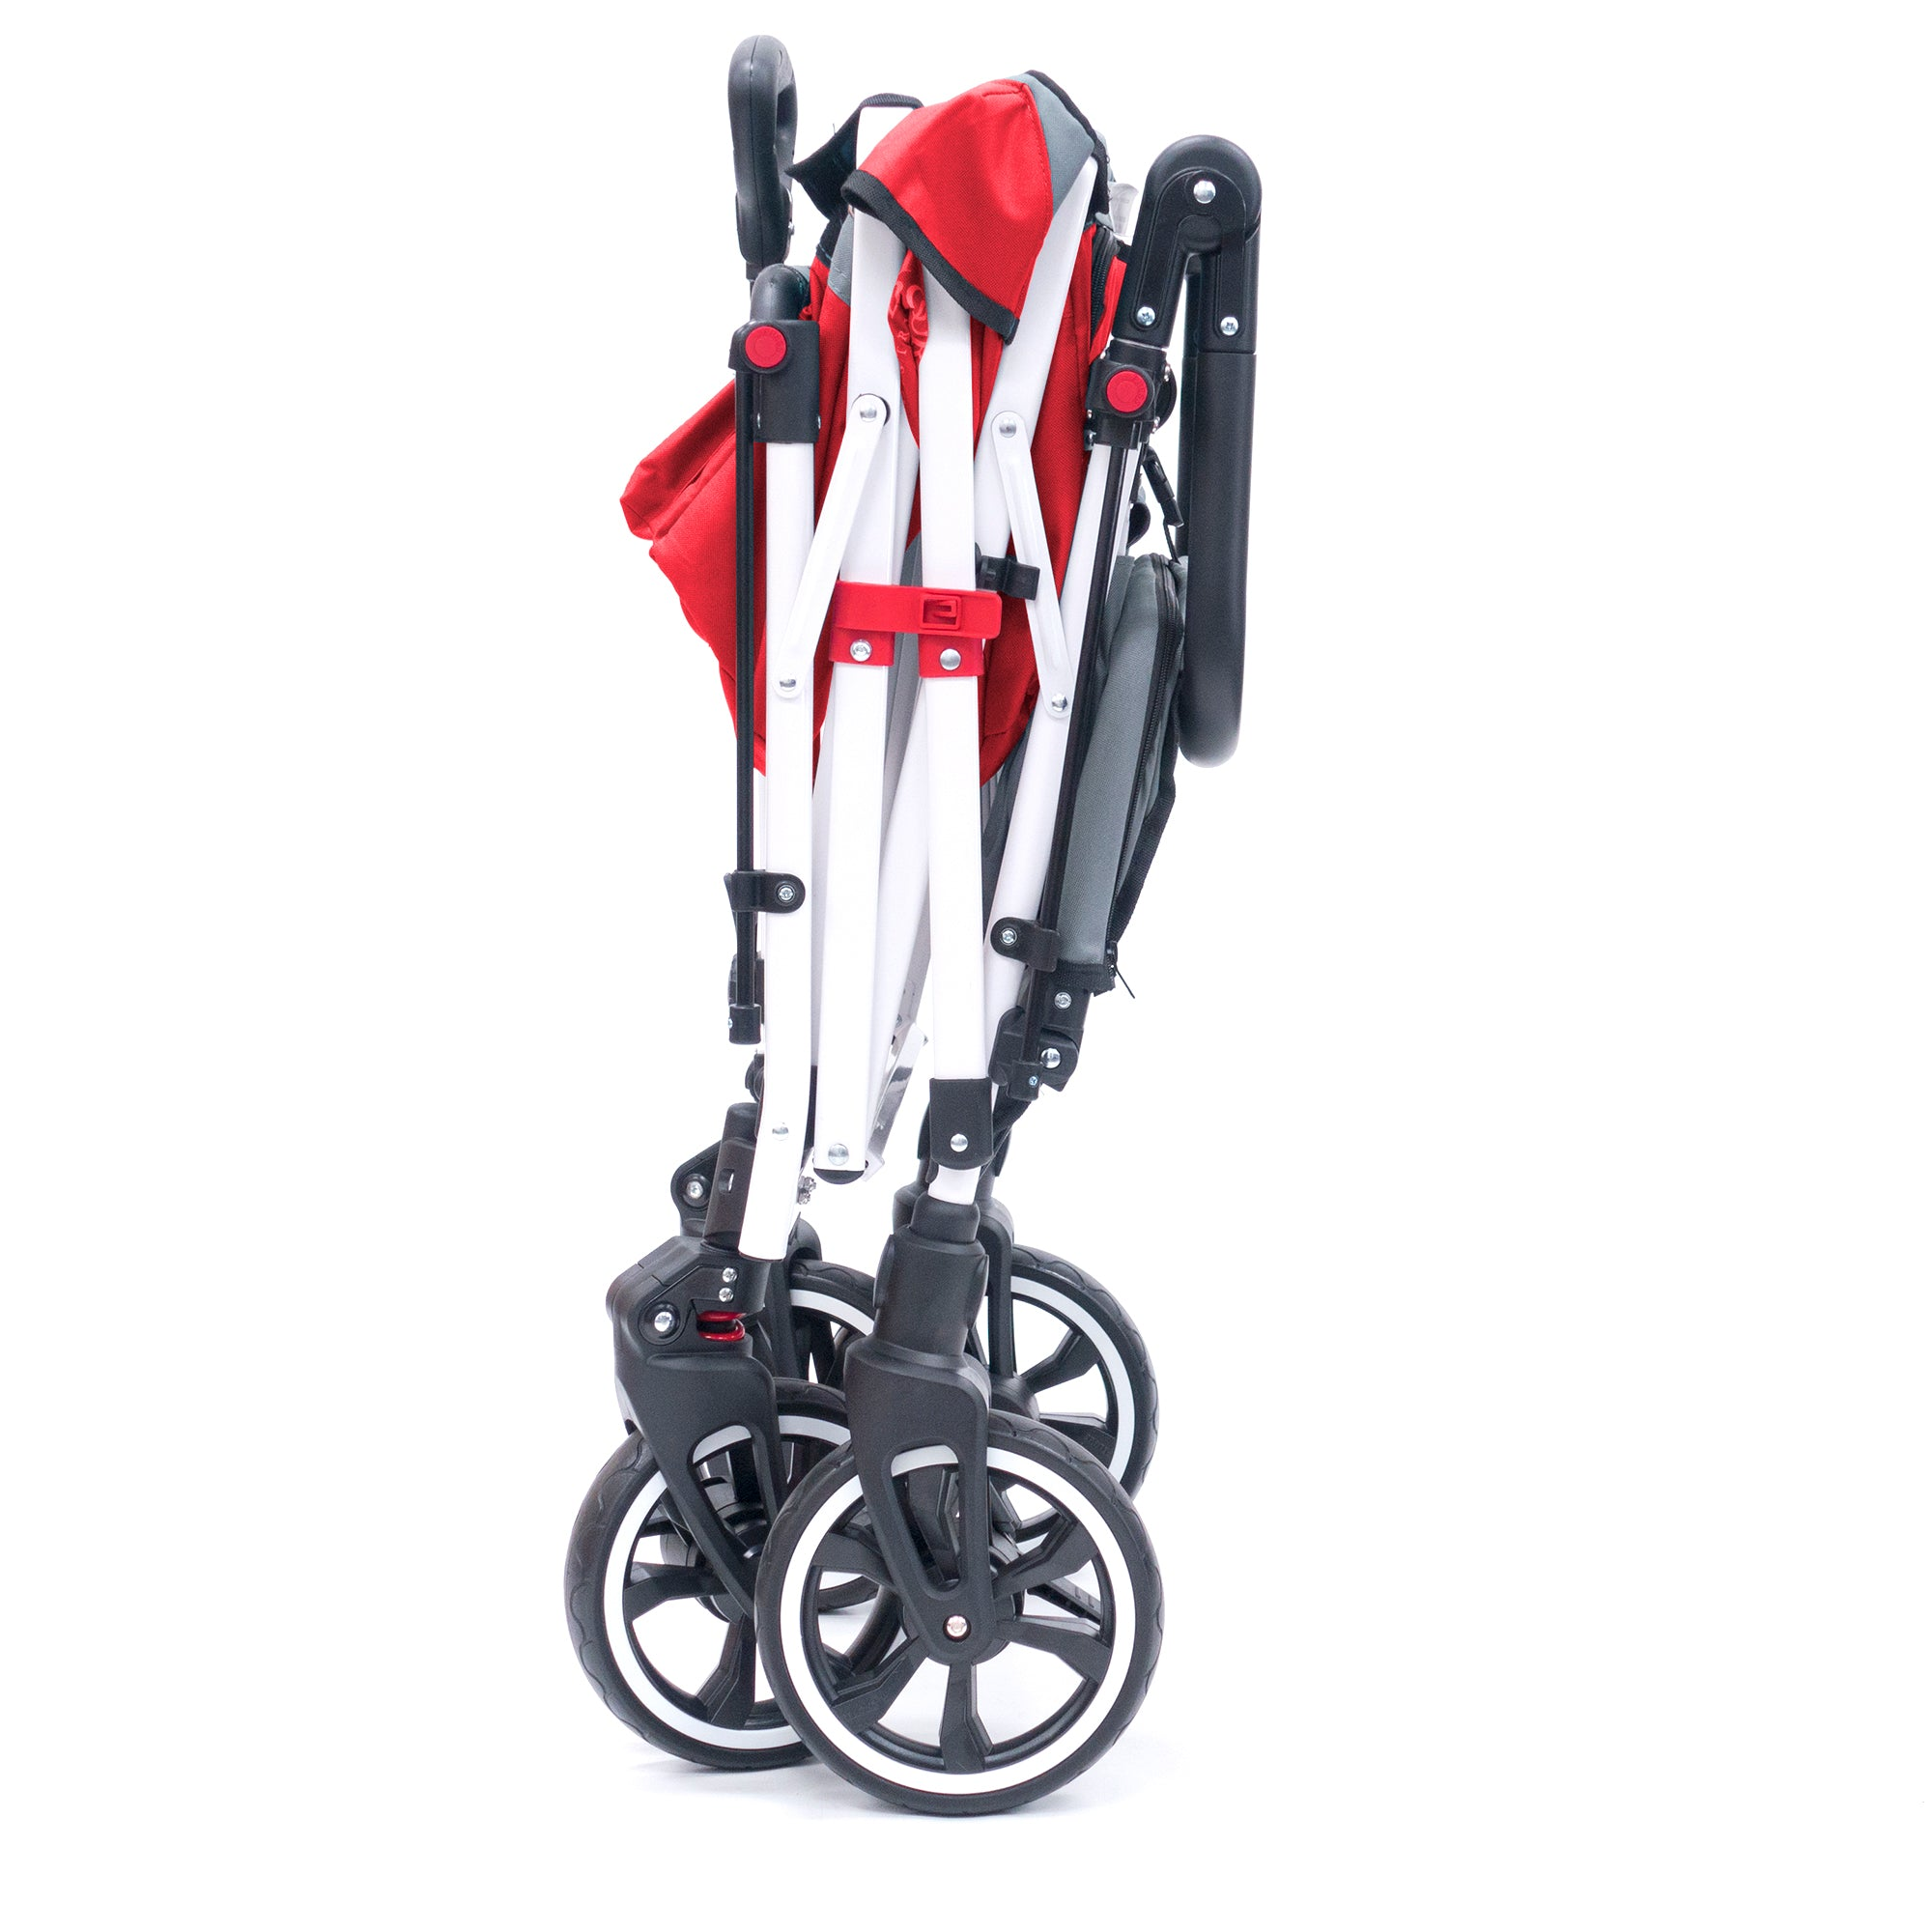 Push Pull TITANIUM SERIES PLUS Folding Wagon Stroller with Canopy | Red